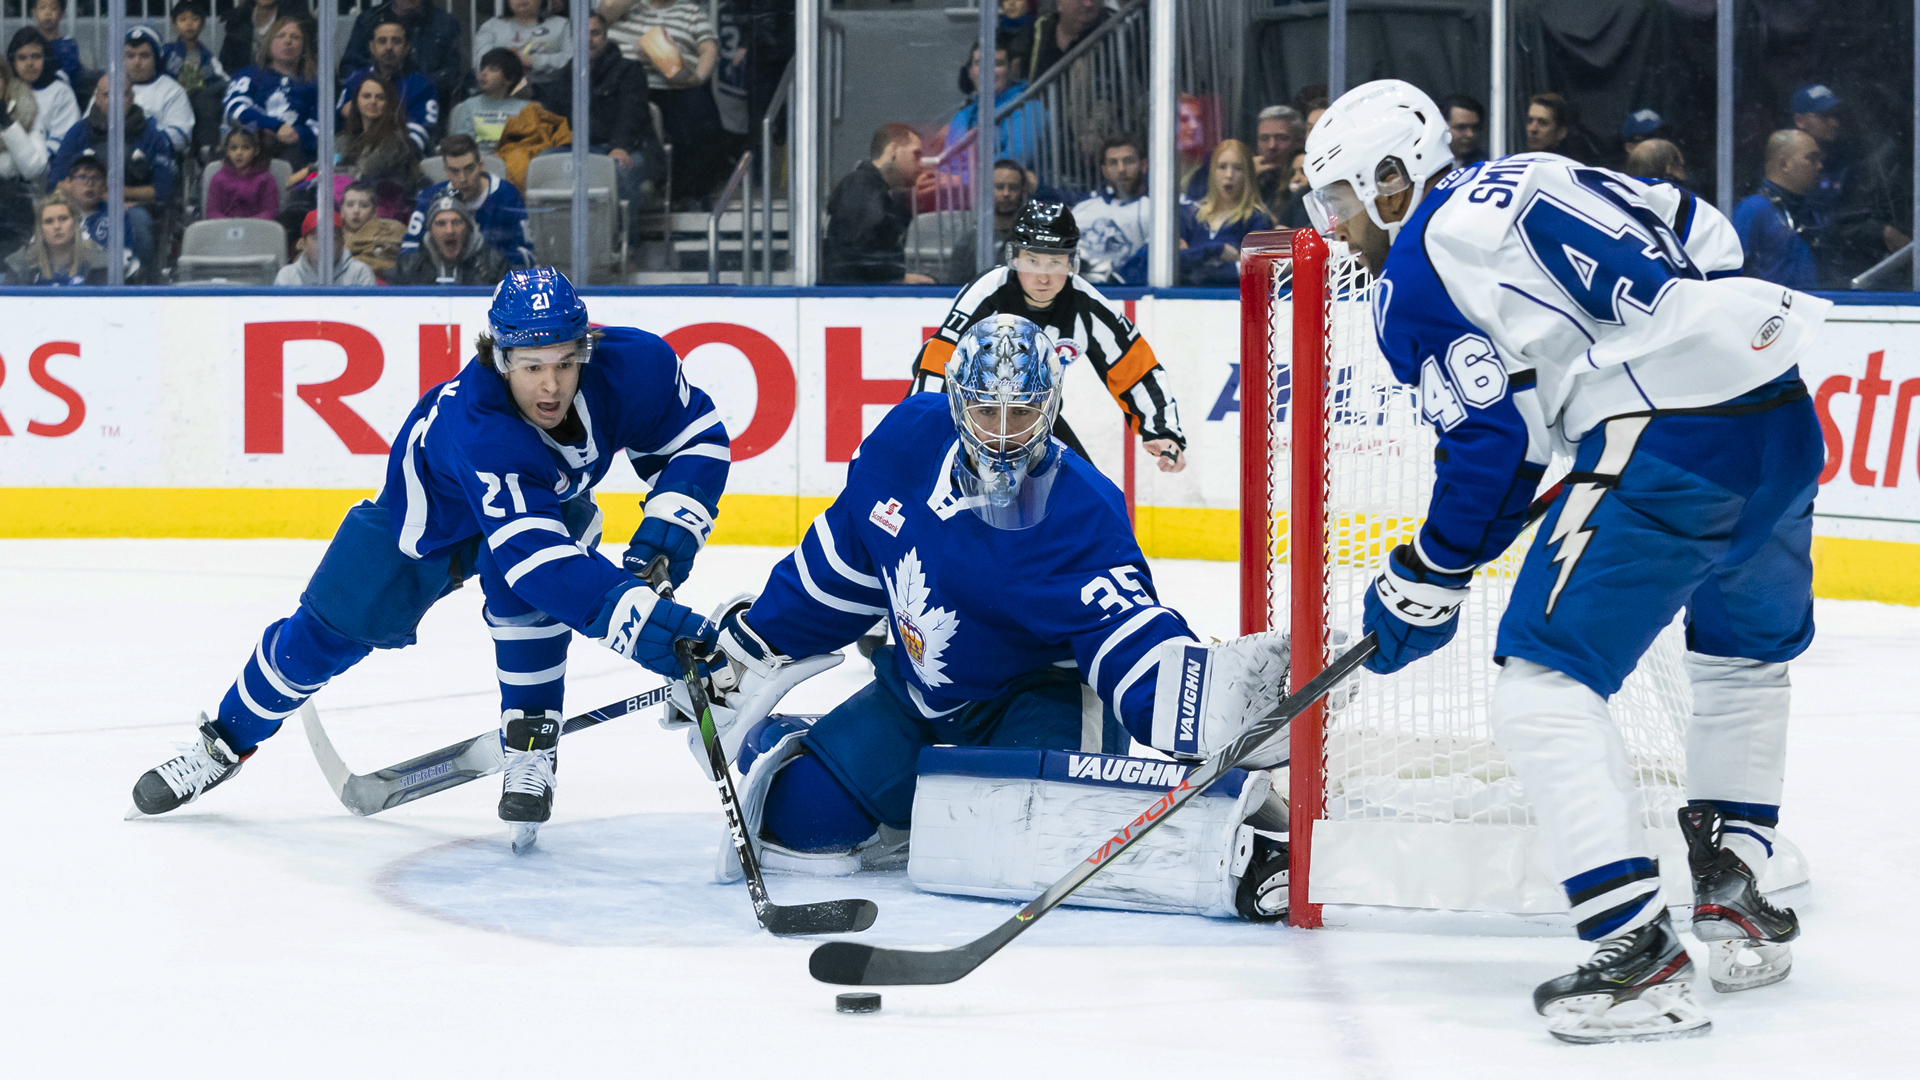 Crunch down Marlies, 2-1